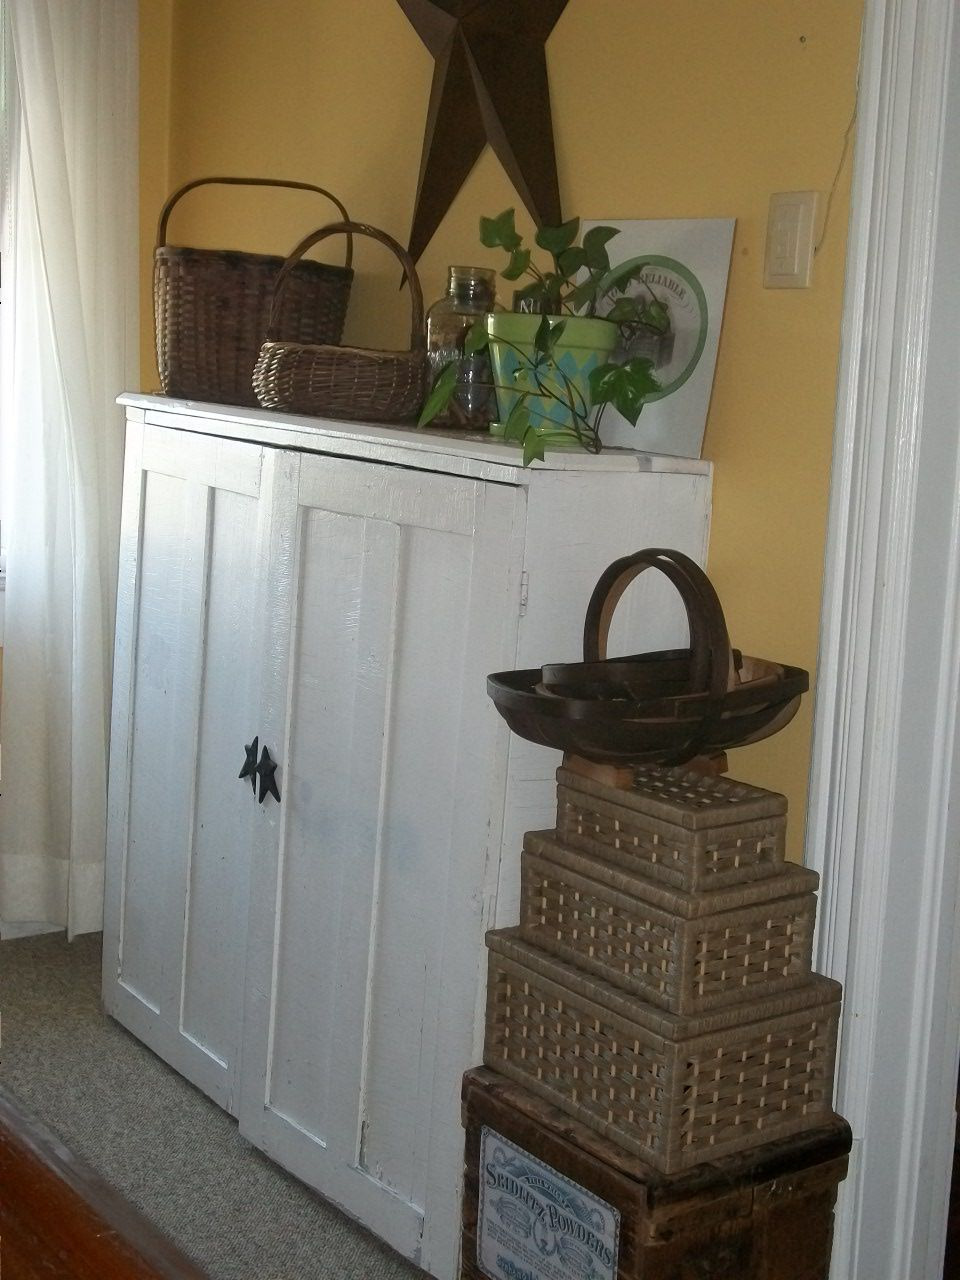 Best Idea Yet For Reusing Old Kitchen Cabinets. Use This Idea For The One Up